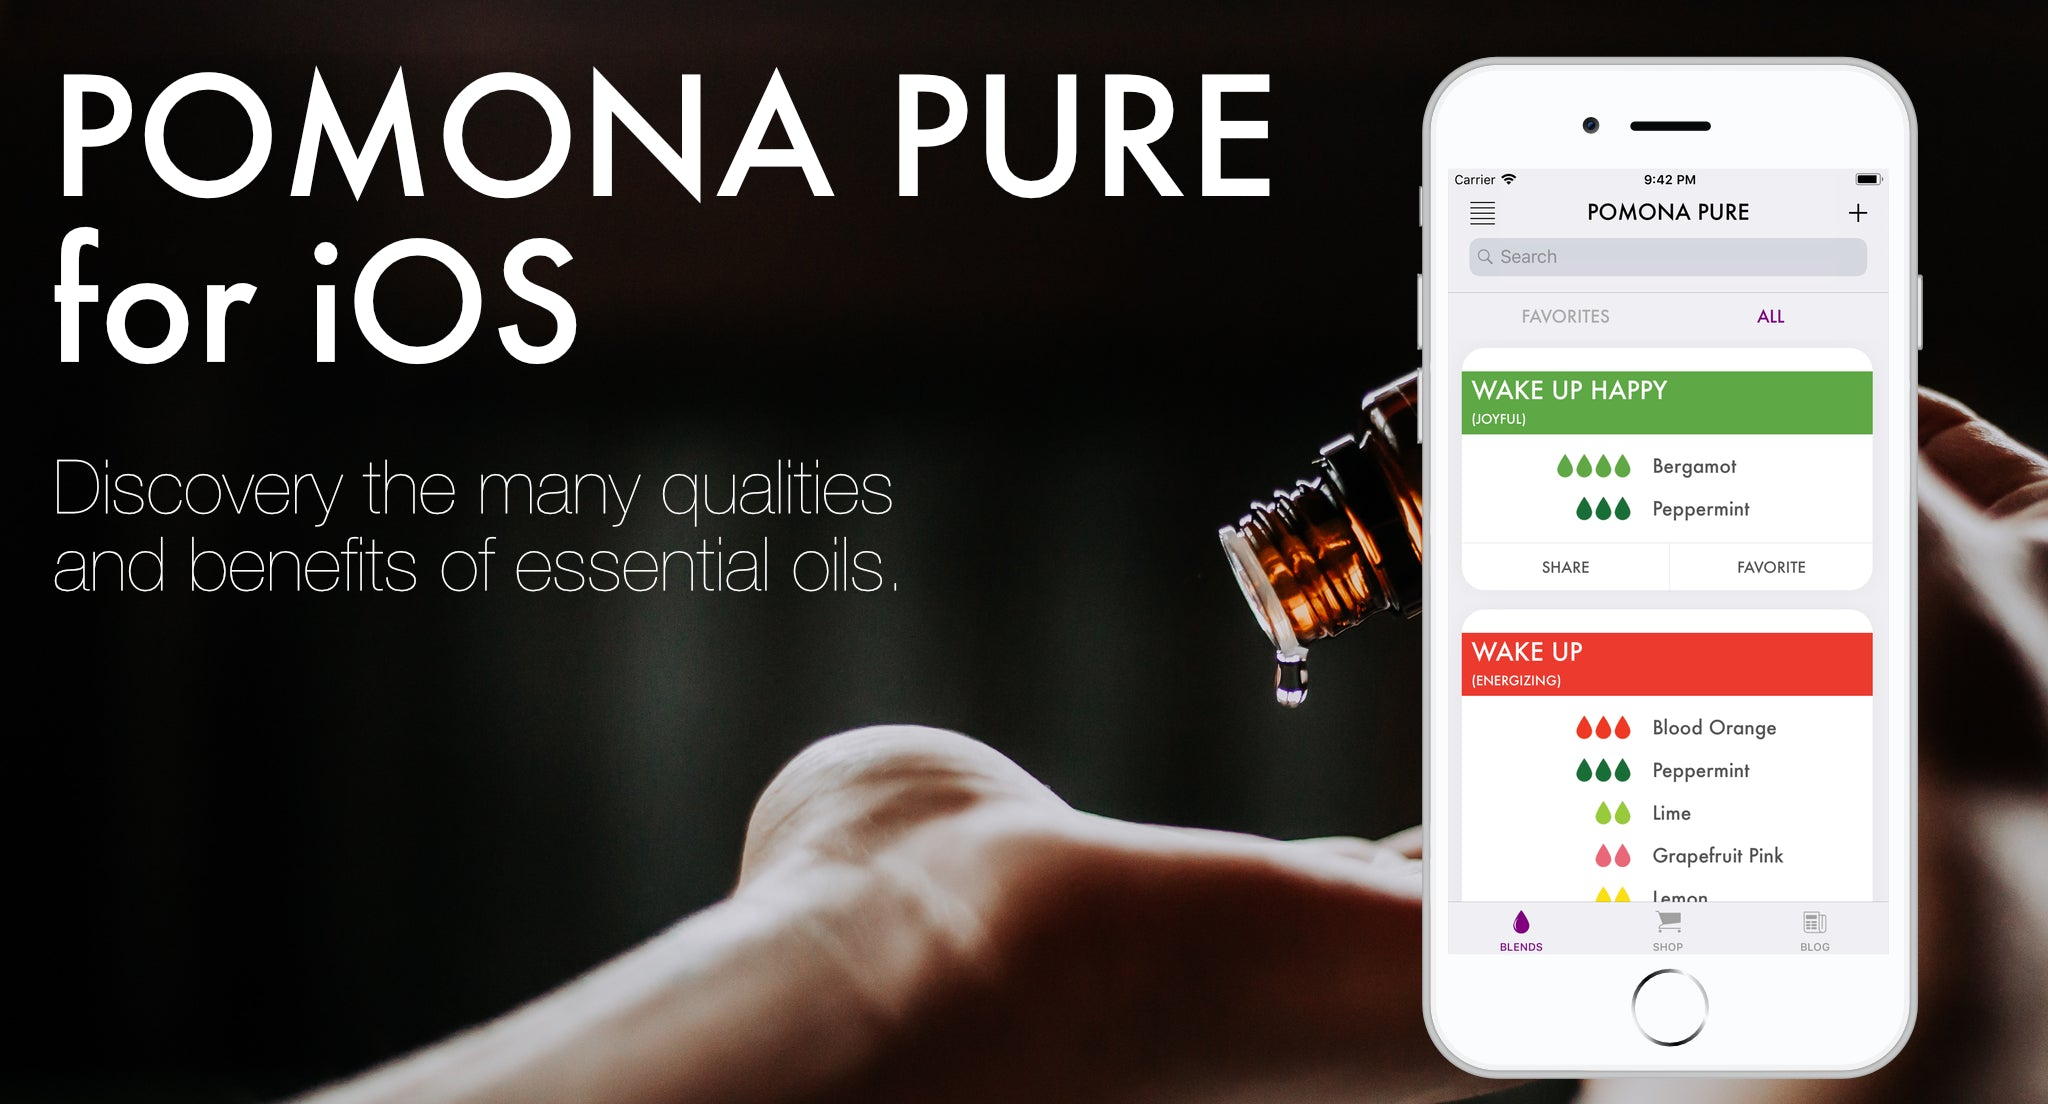 Pomona Pure for iOS, Discover the many qualities and benefits of essential oils.